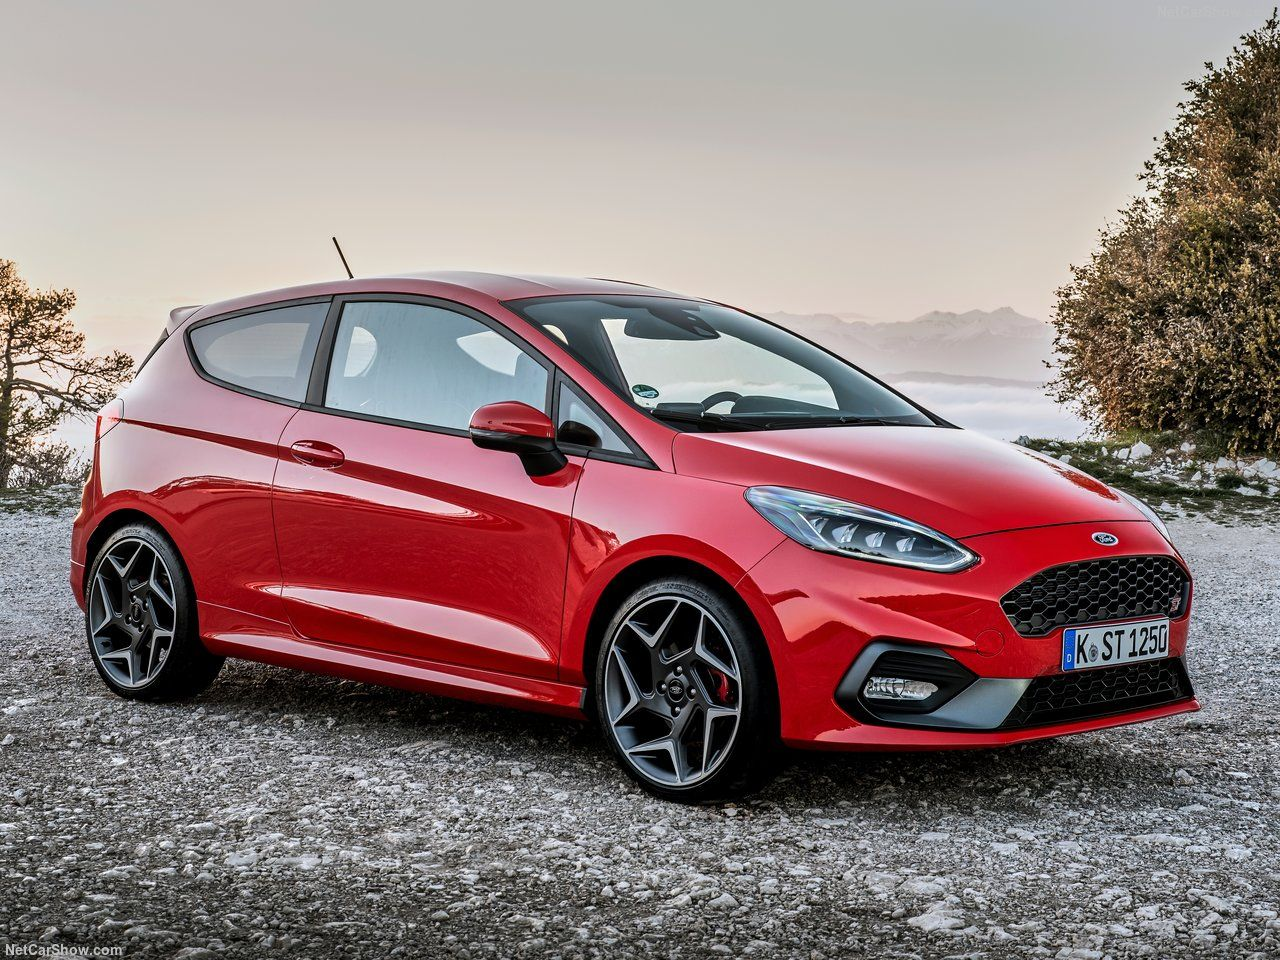 2018 Ford Fiesta St With Images Ford Fiesta St Ford Fiesta Fiesta St